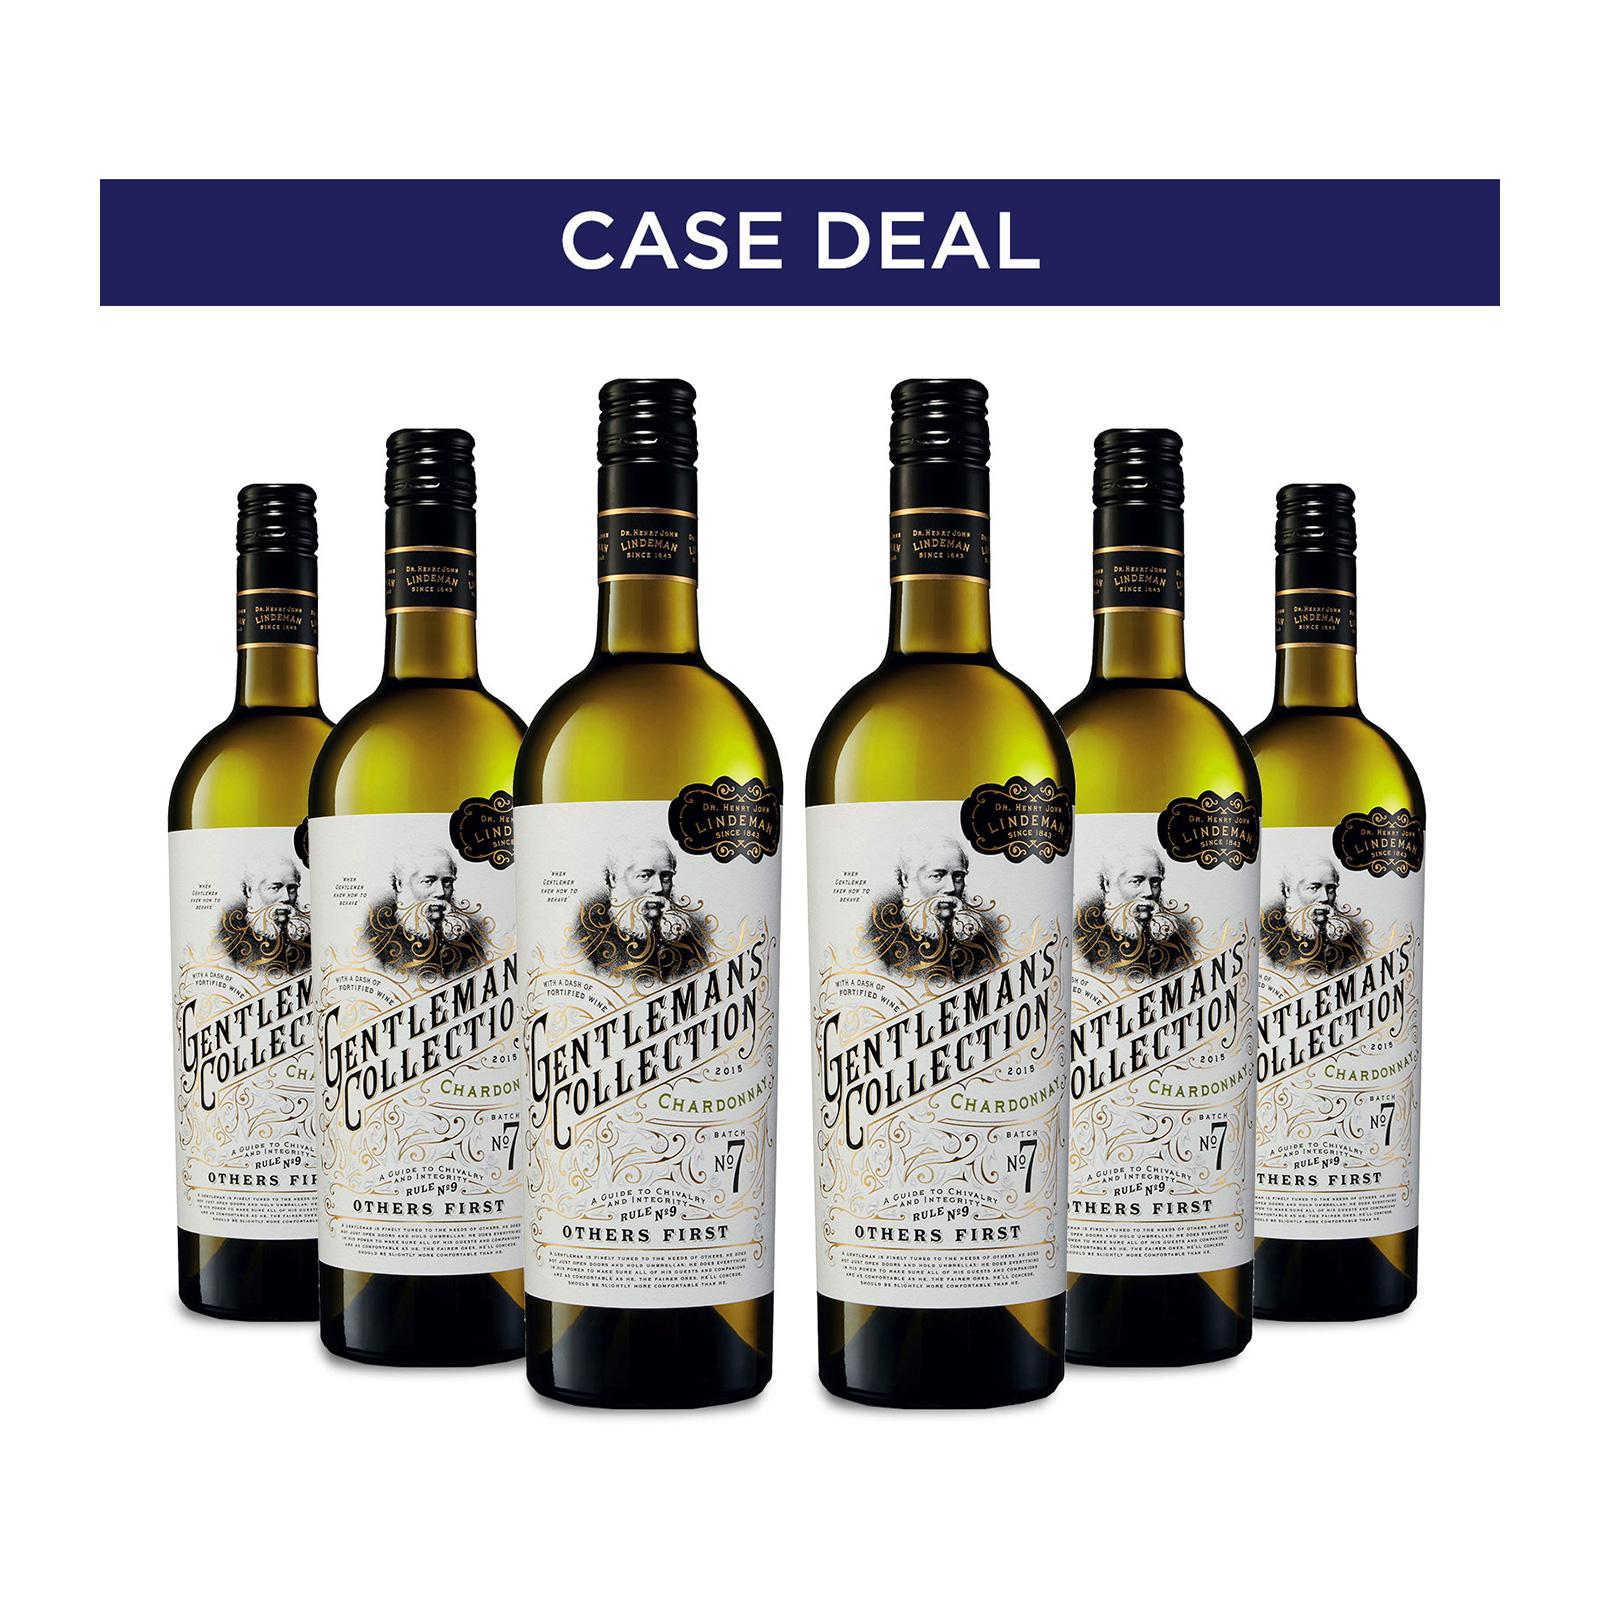 Lindeman's Gentleman's Collection Chardonnay Wine